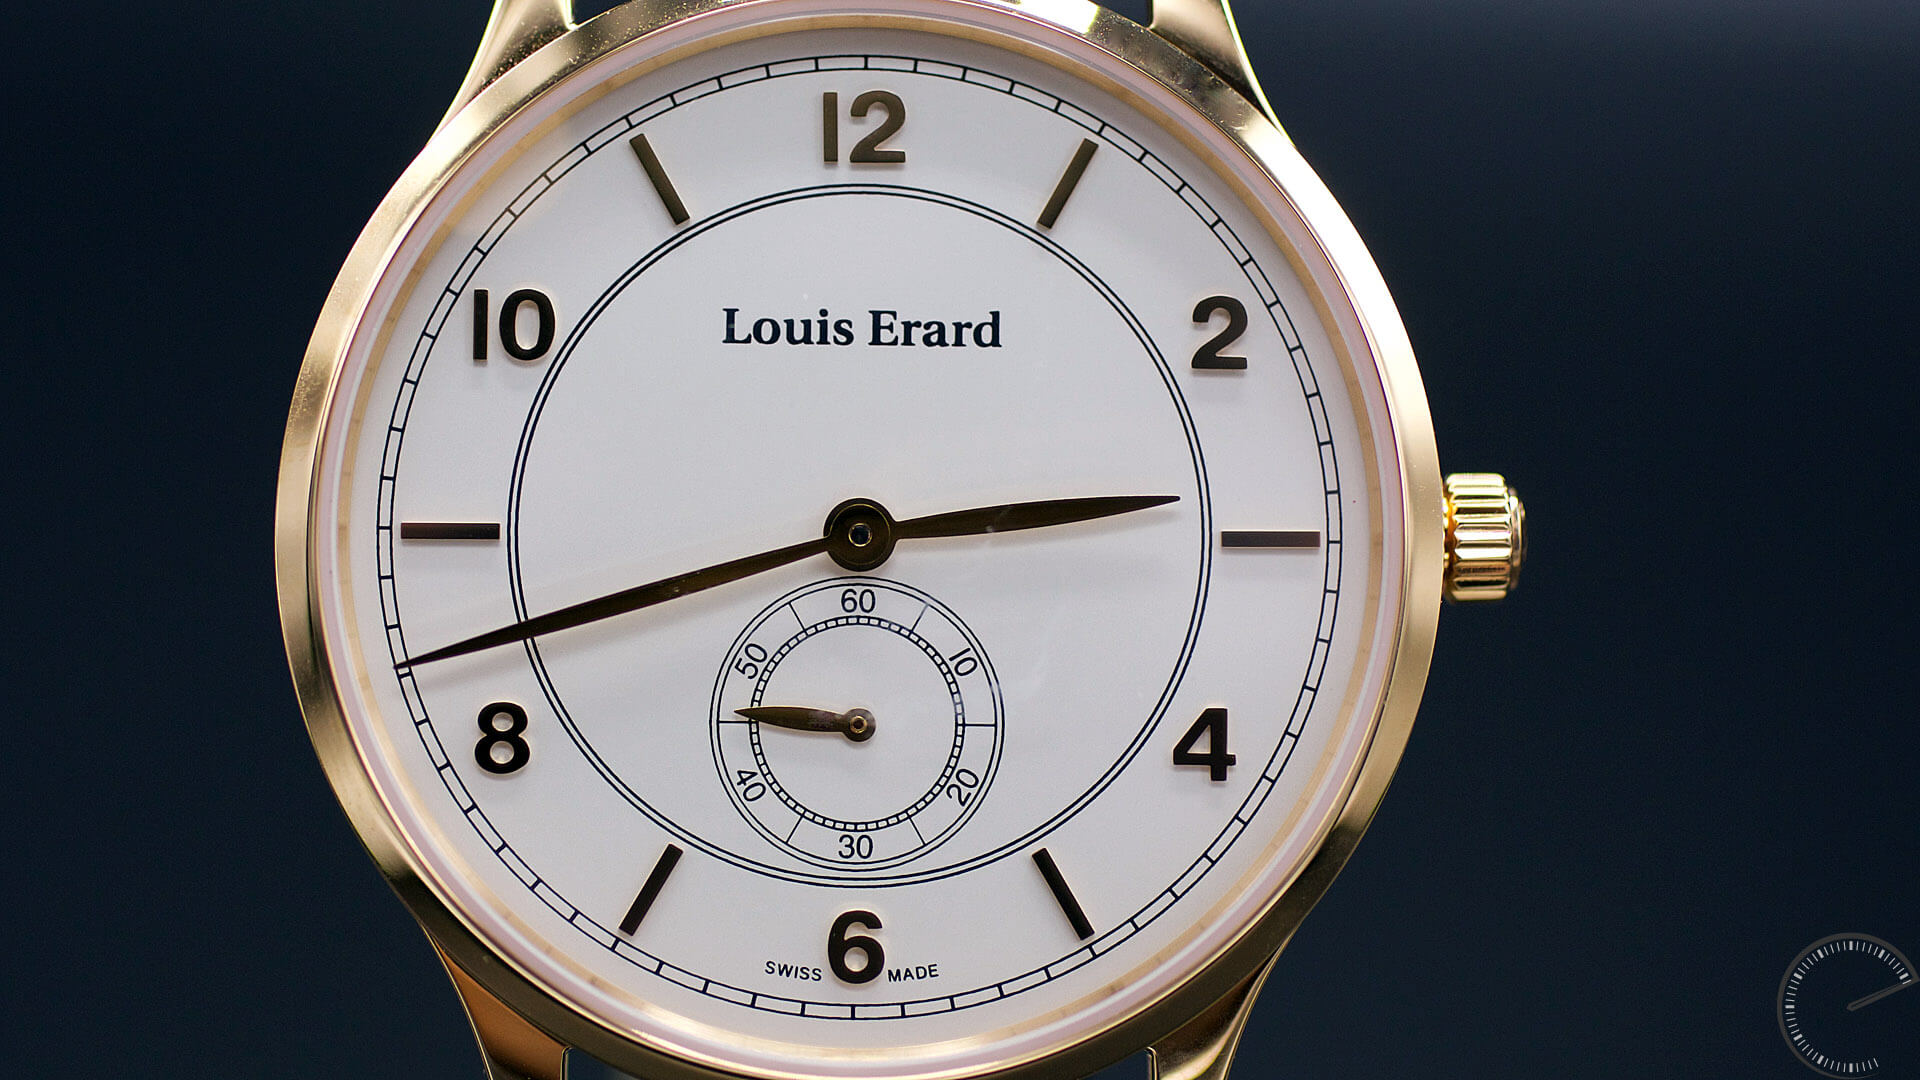 Louis_Erard_1931_Ref.47_217_OR_51_dial - ESCAPEMENT MAGAZINE - watch reviews by Angus Davies